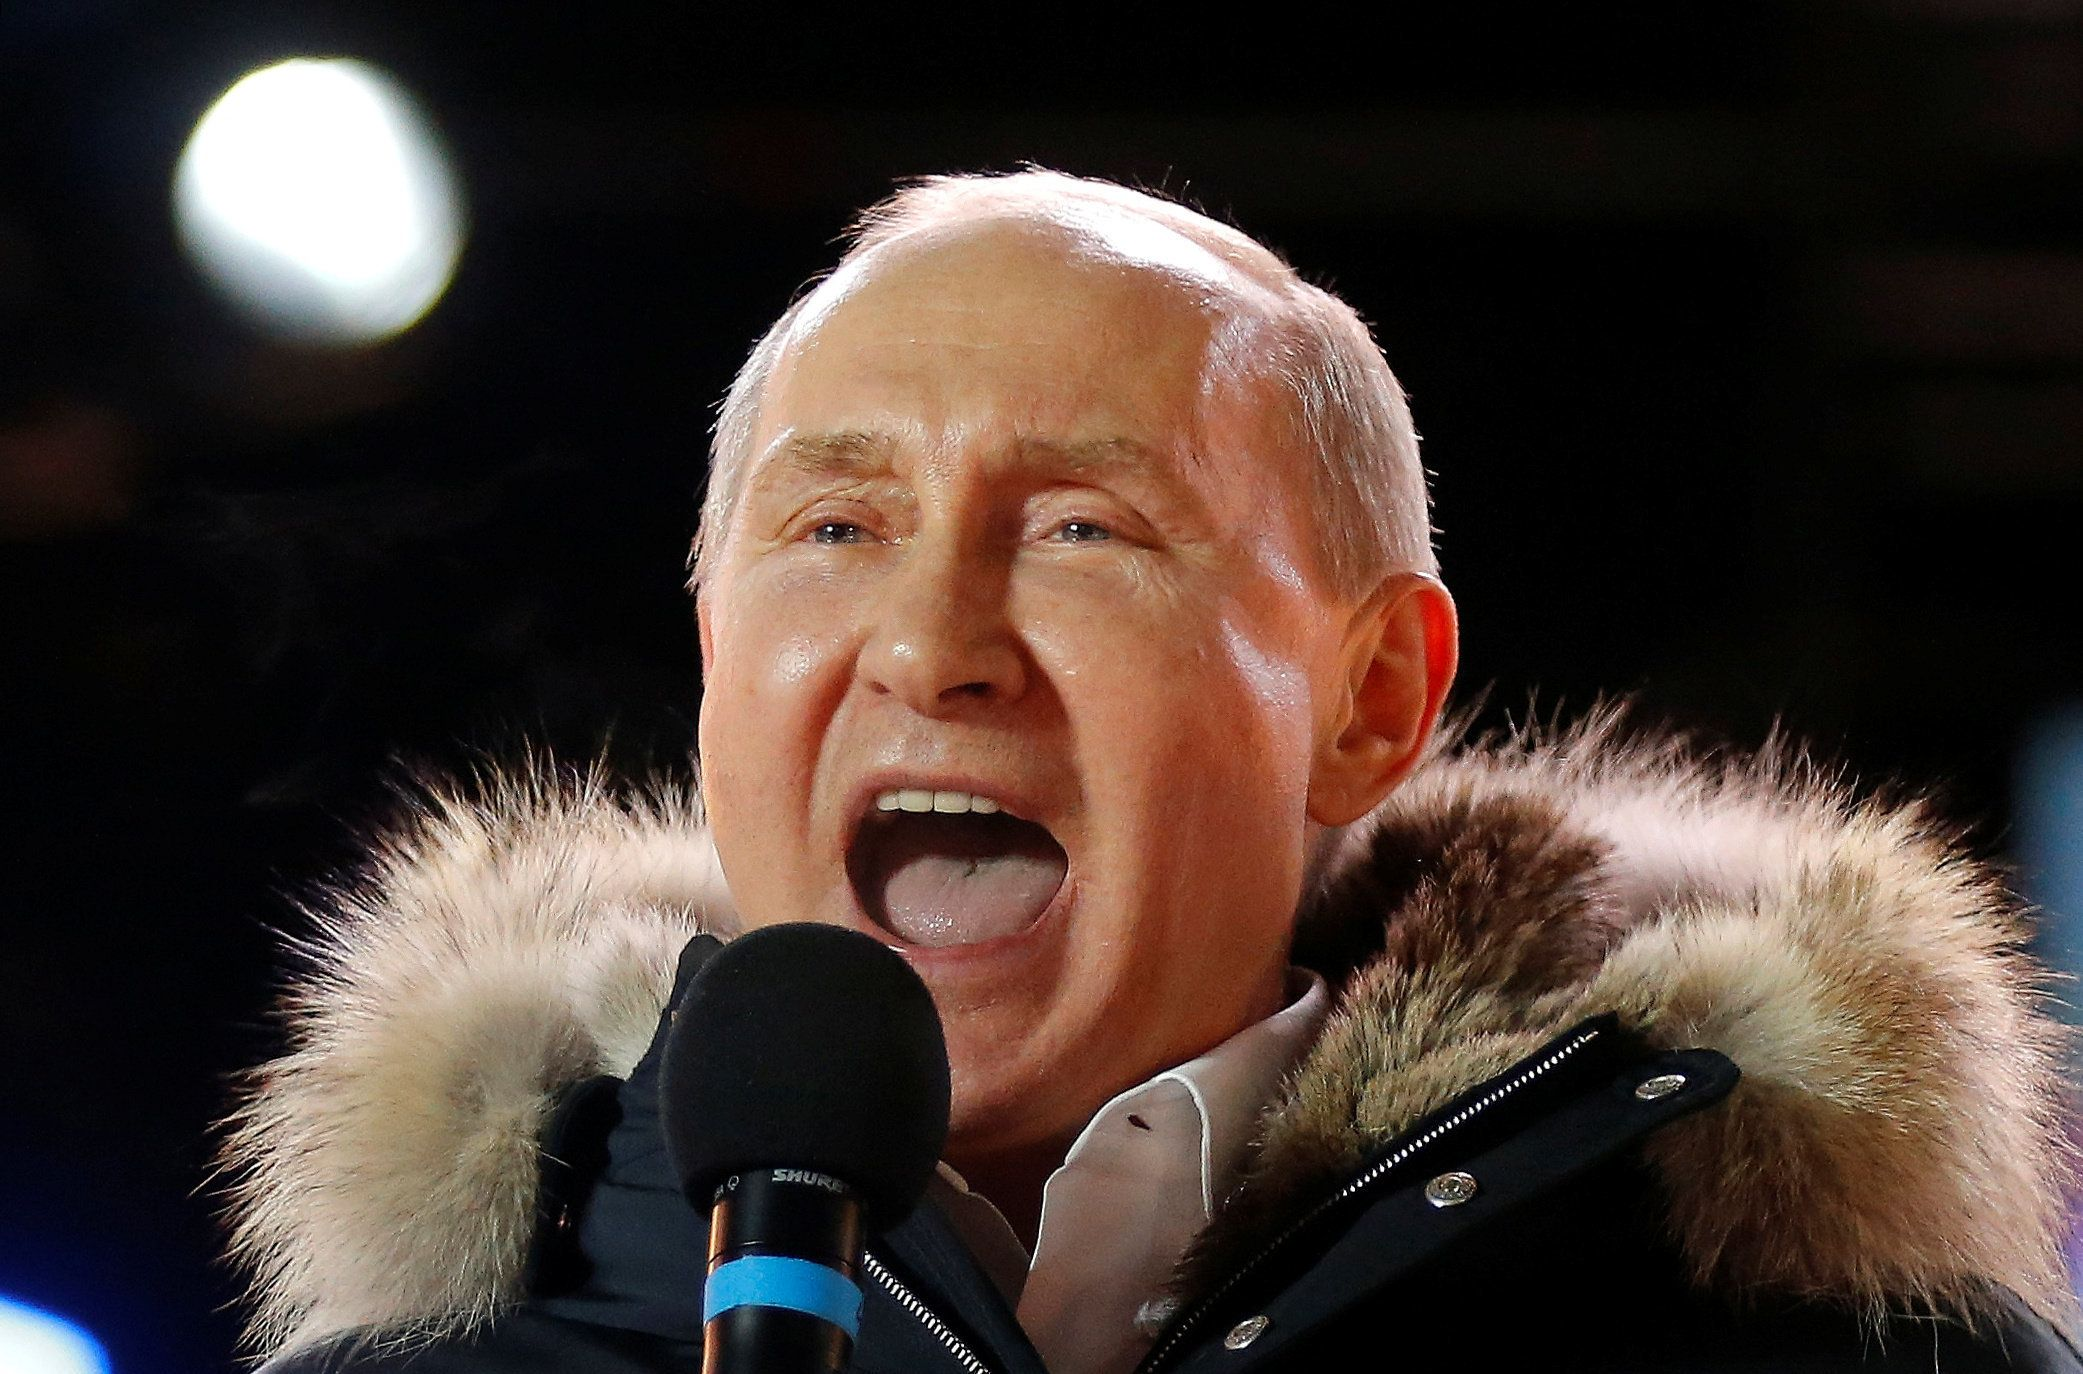 Russian President and Presidential candidate Vladimir Putin delivers a speech during a rally and concert marking the fourth anniversary of Russia's annexation of the Crimea region, at Manezhnaya Square in central Moscow, Russia March 18, 2018. Alexander Zemlianichenko/POOL via Reuters